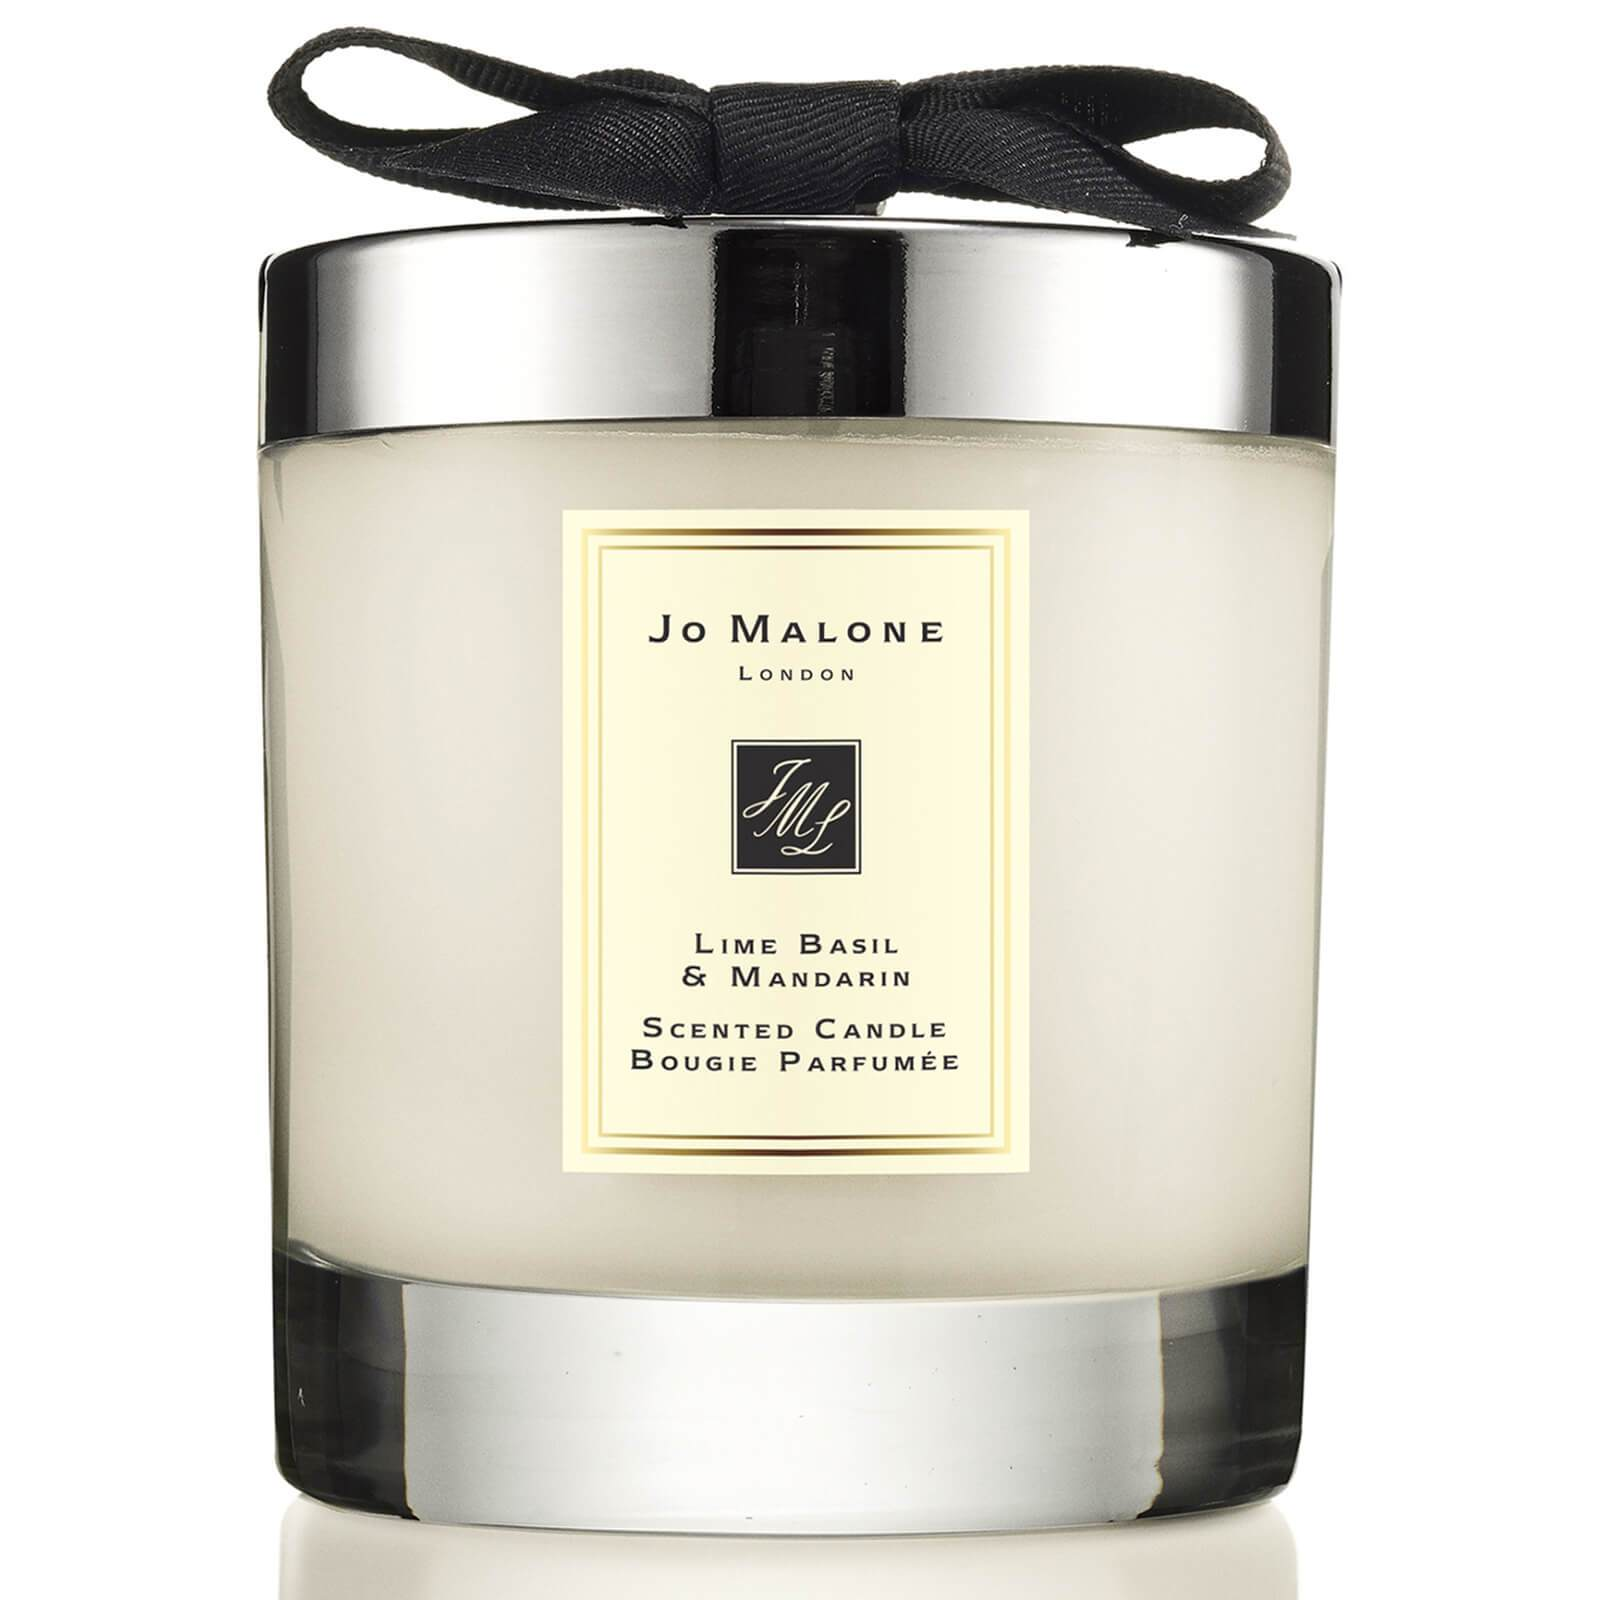 This Jo Malone candle will set you back £48 at lookfantastic.com